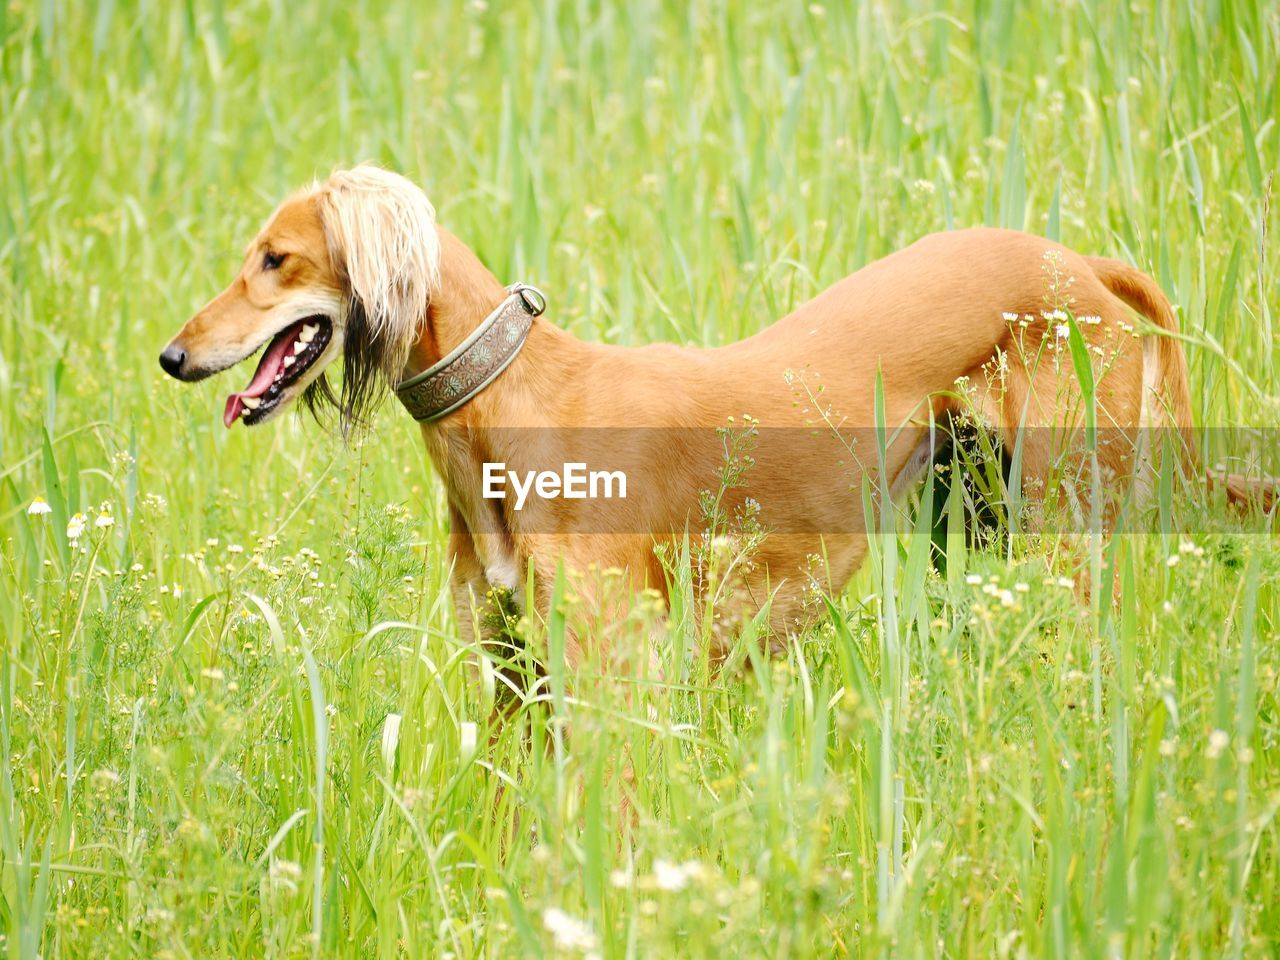 canine, dog, one animal, plant, grass, animal themes, domestic, animal, pets, domestic animals, mammal, green color, field, nature, pet collar, day, land, vertebrate, collar, growth, no people, outdoors, mouth open